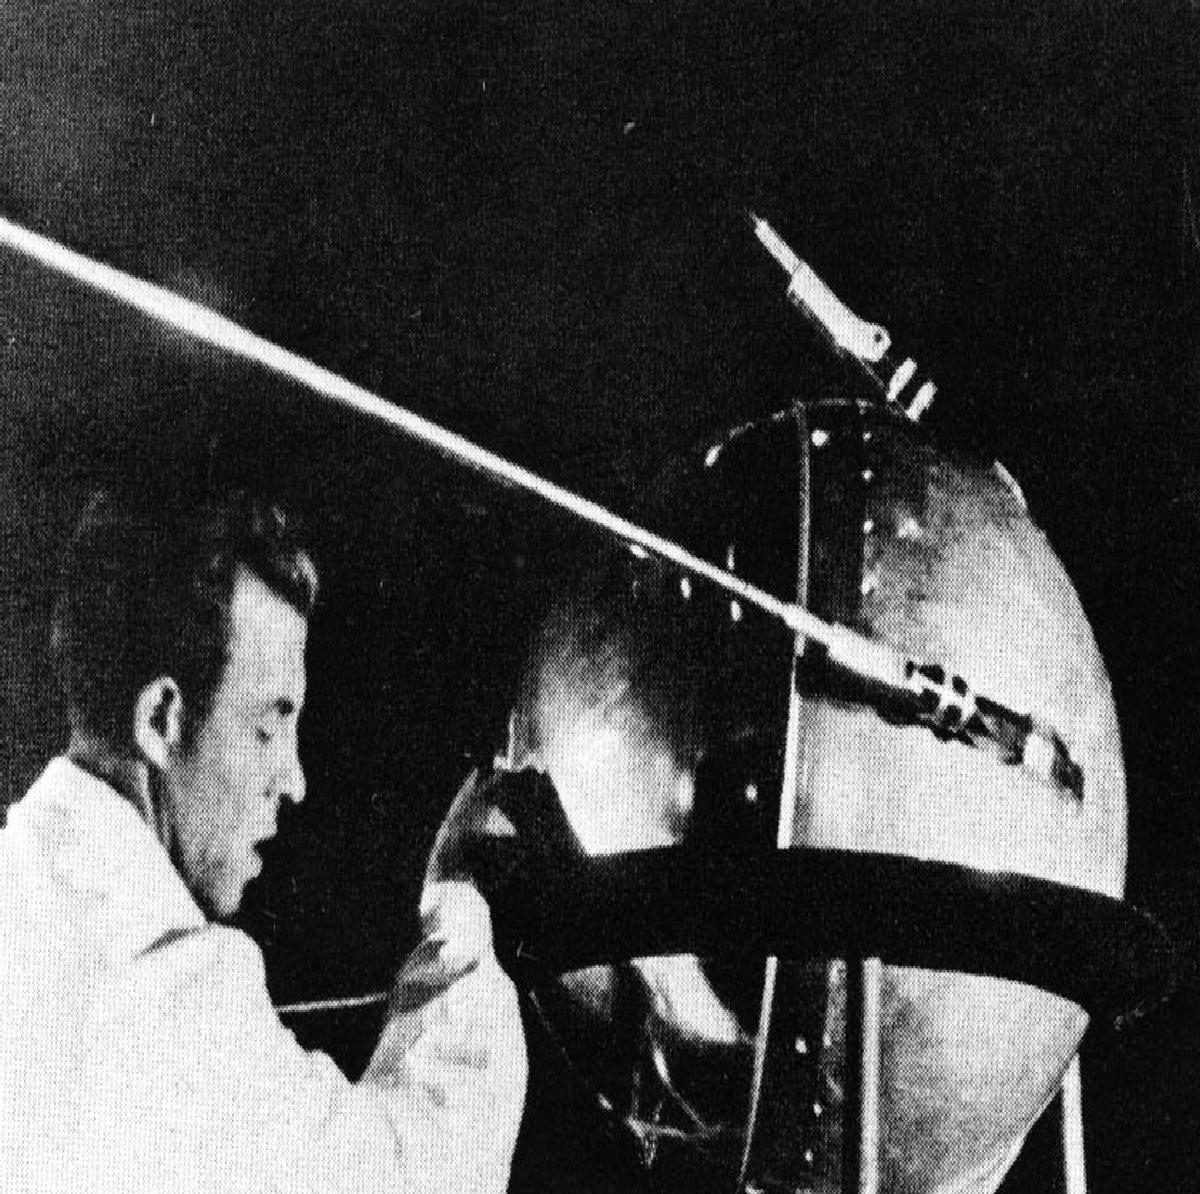 an introduction to the history of the sputnik program Background the sputnik program was a series of five space missions launched by the soviet union in the late 1950s there are a variety of other classes of soviet spacecraft that are referred to as sputniks by americans, however only the first five were part of the soviet sputnik program.